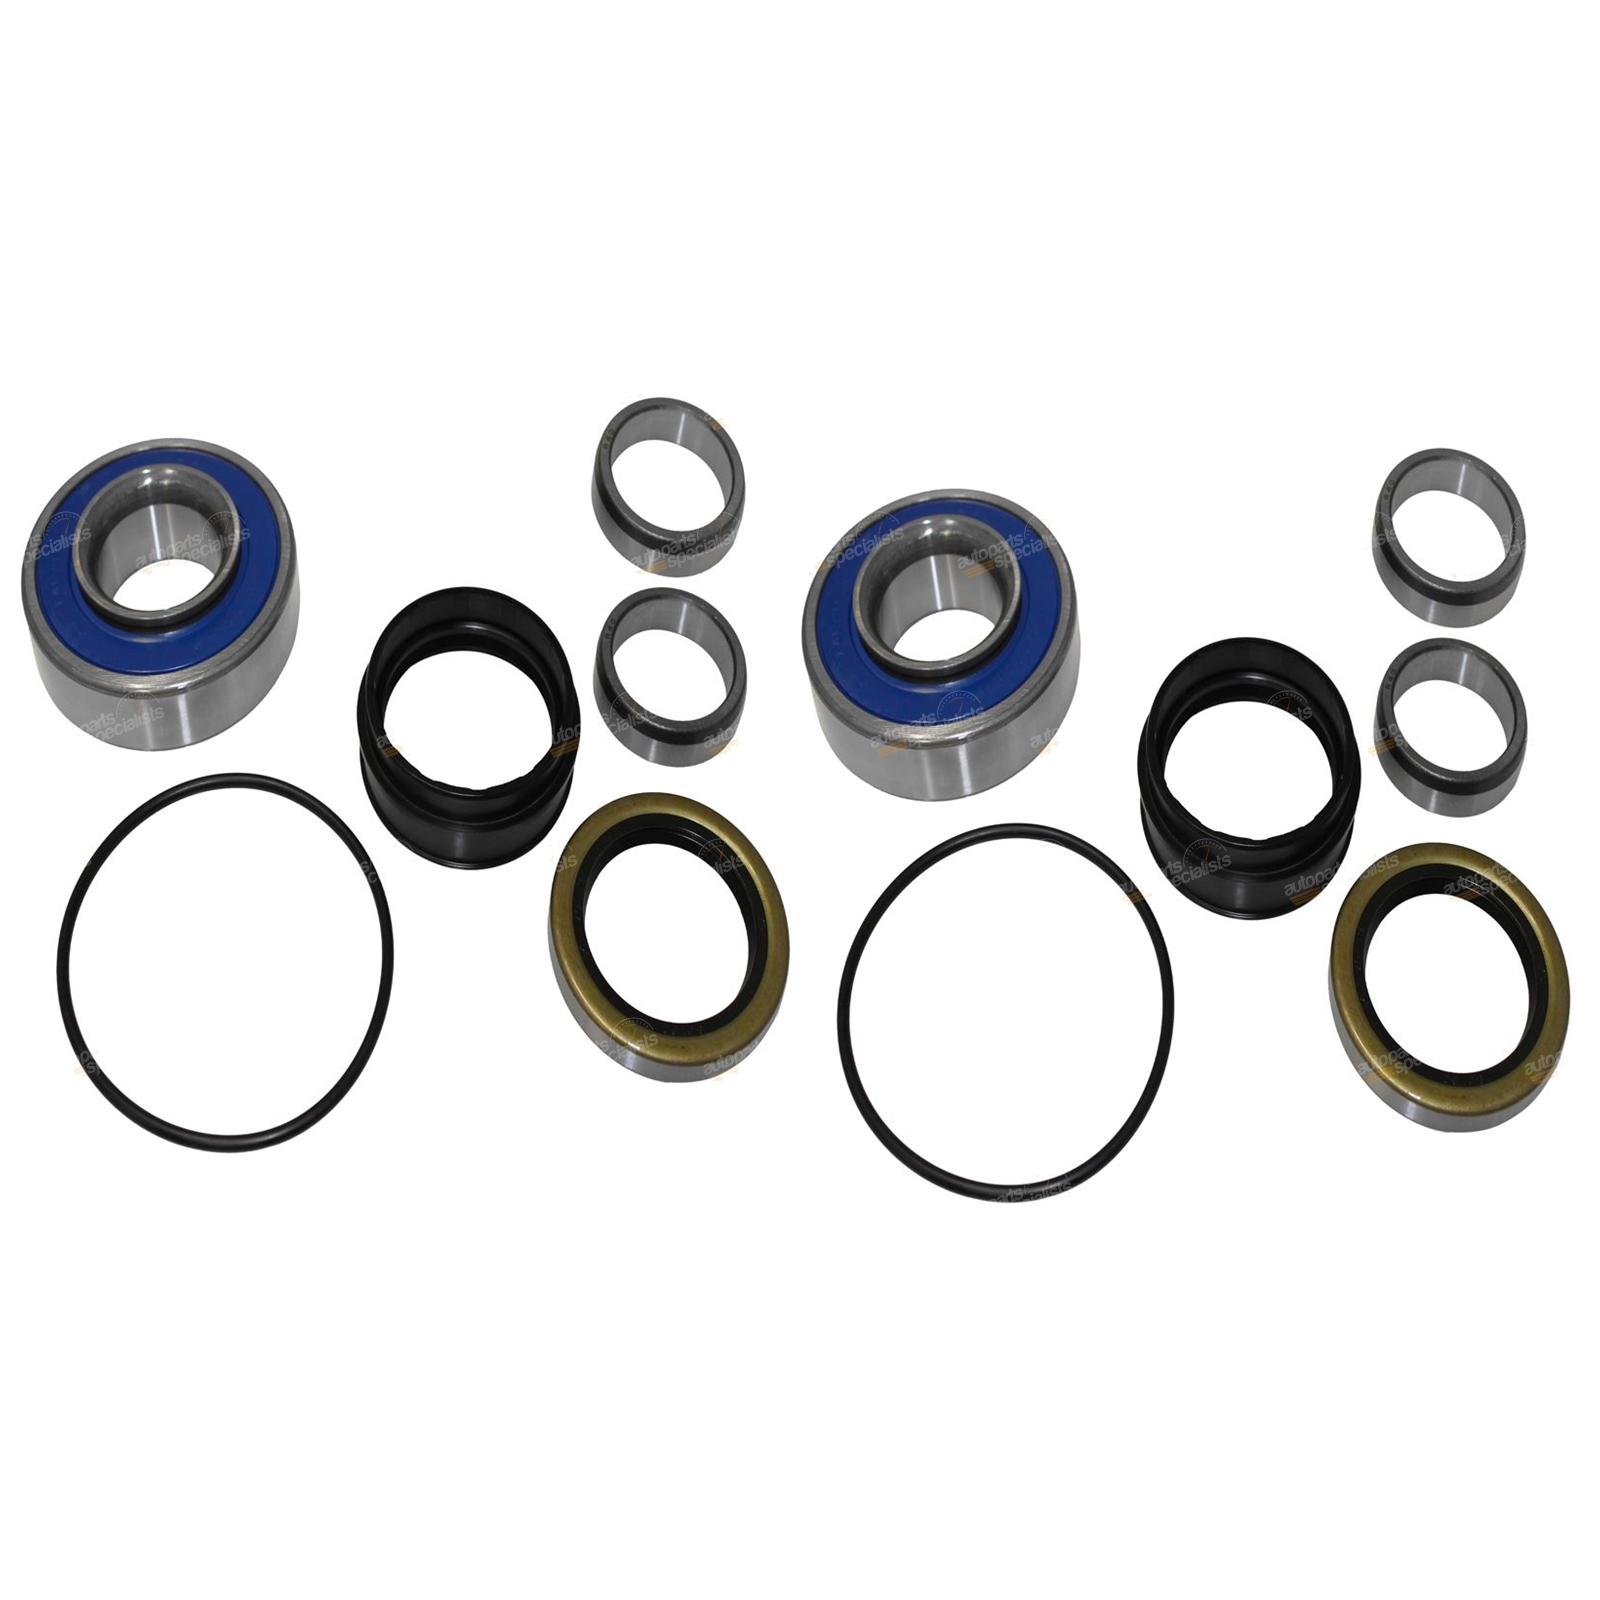 2 Rear Wheel Bearing Kits Suits Toyota Hilux 4x4 Ute 5